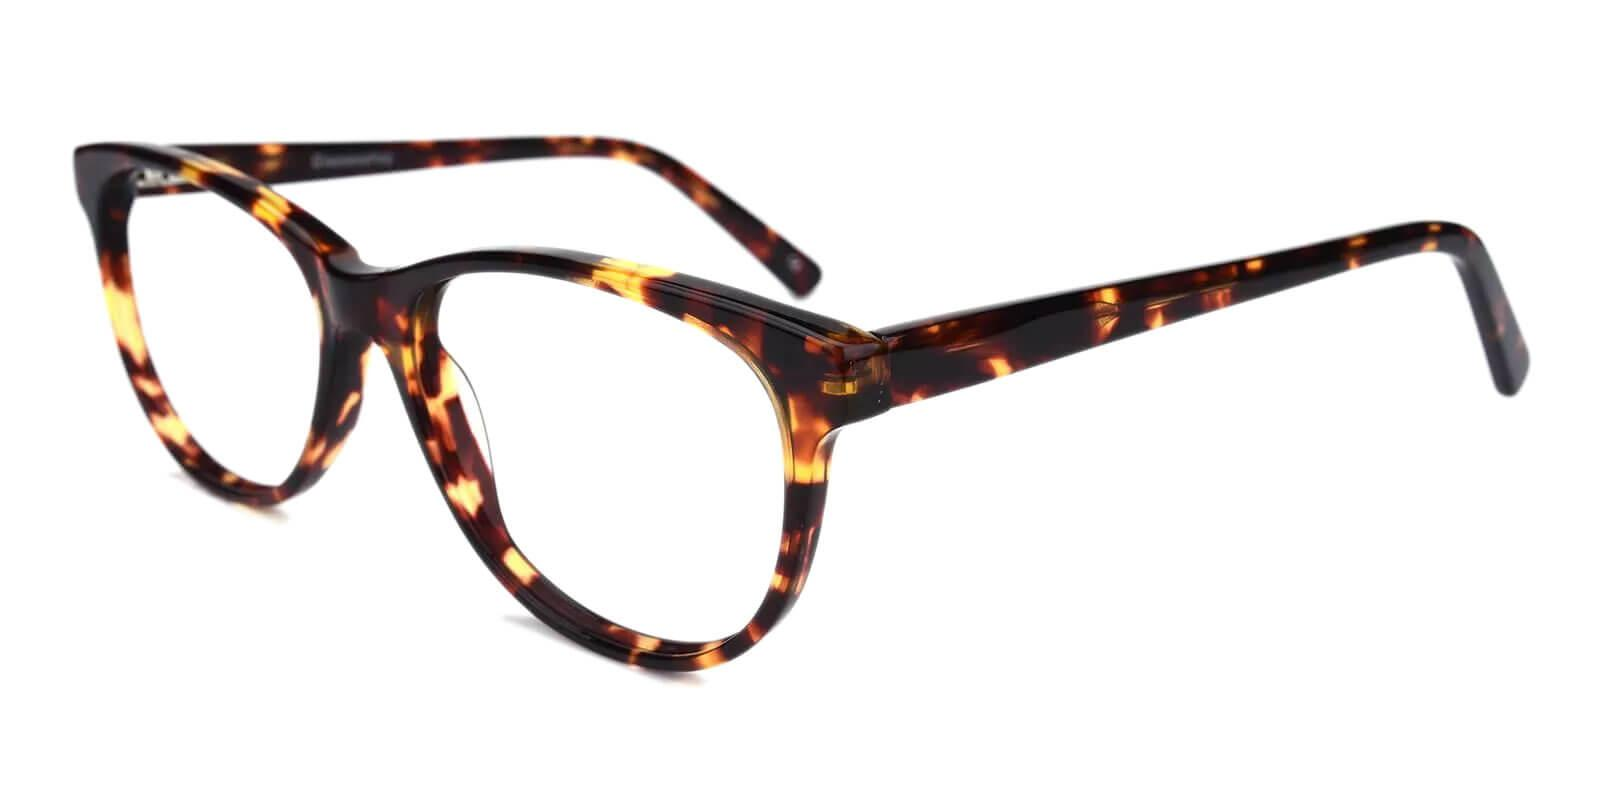 Neptune Pattern Acetate Eyeglasses , SpringHinges , UniversalBridgeFit Frames from ABBE Glasses